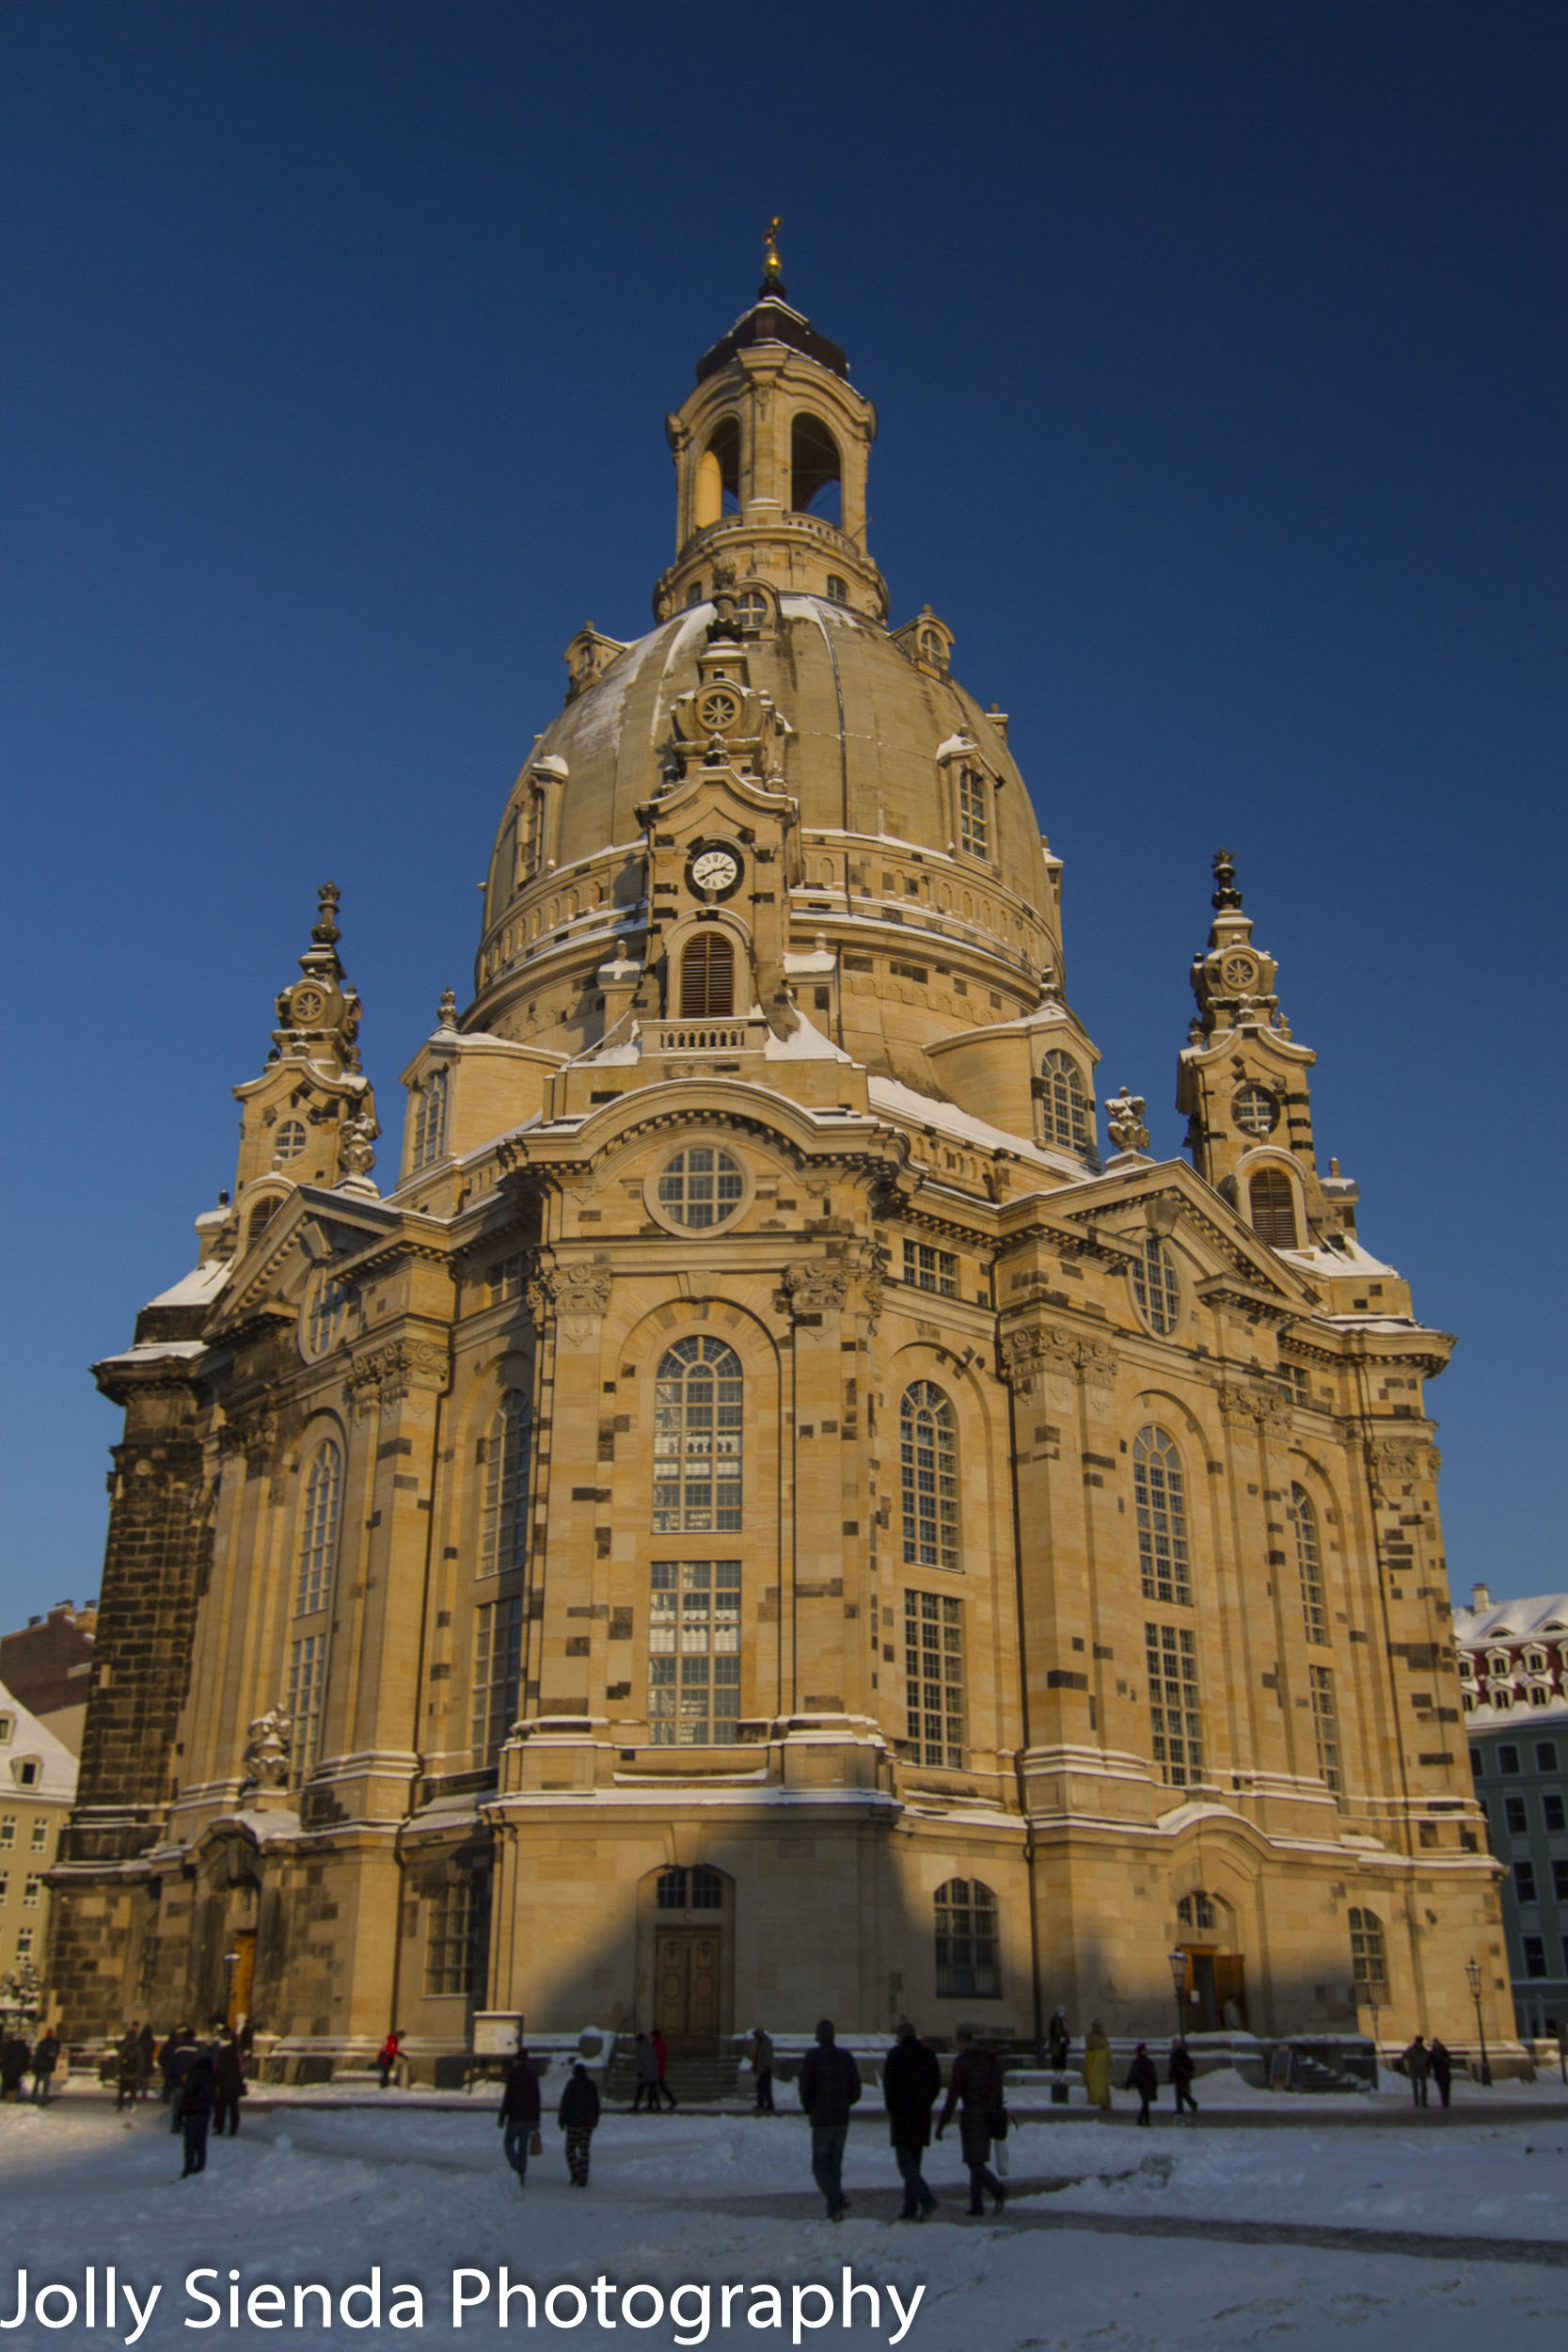 Church of our Lady, Frauenkirche, and people in the snow